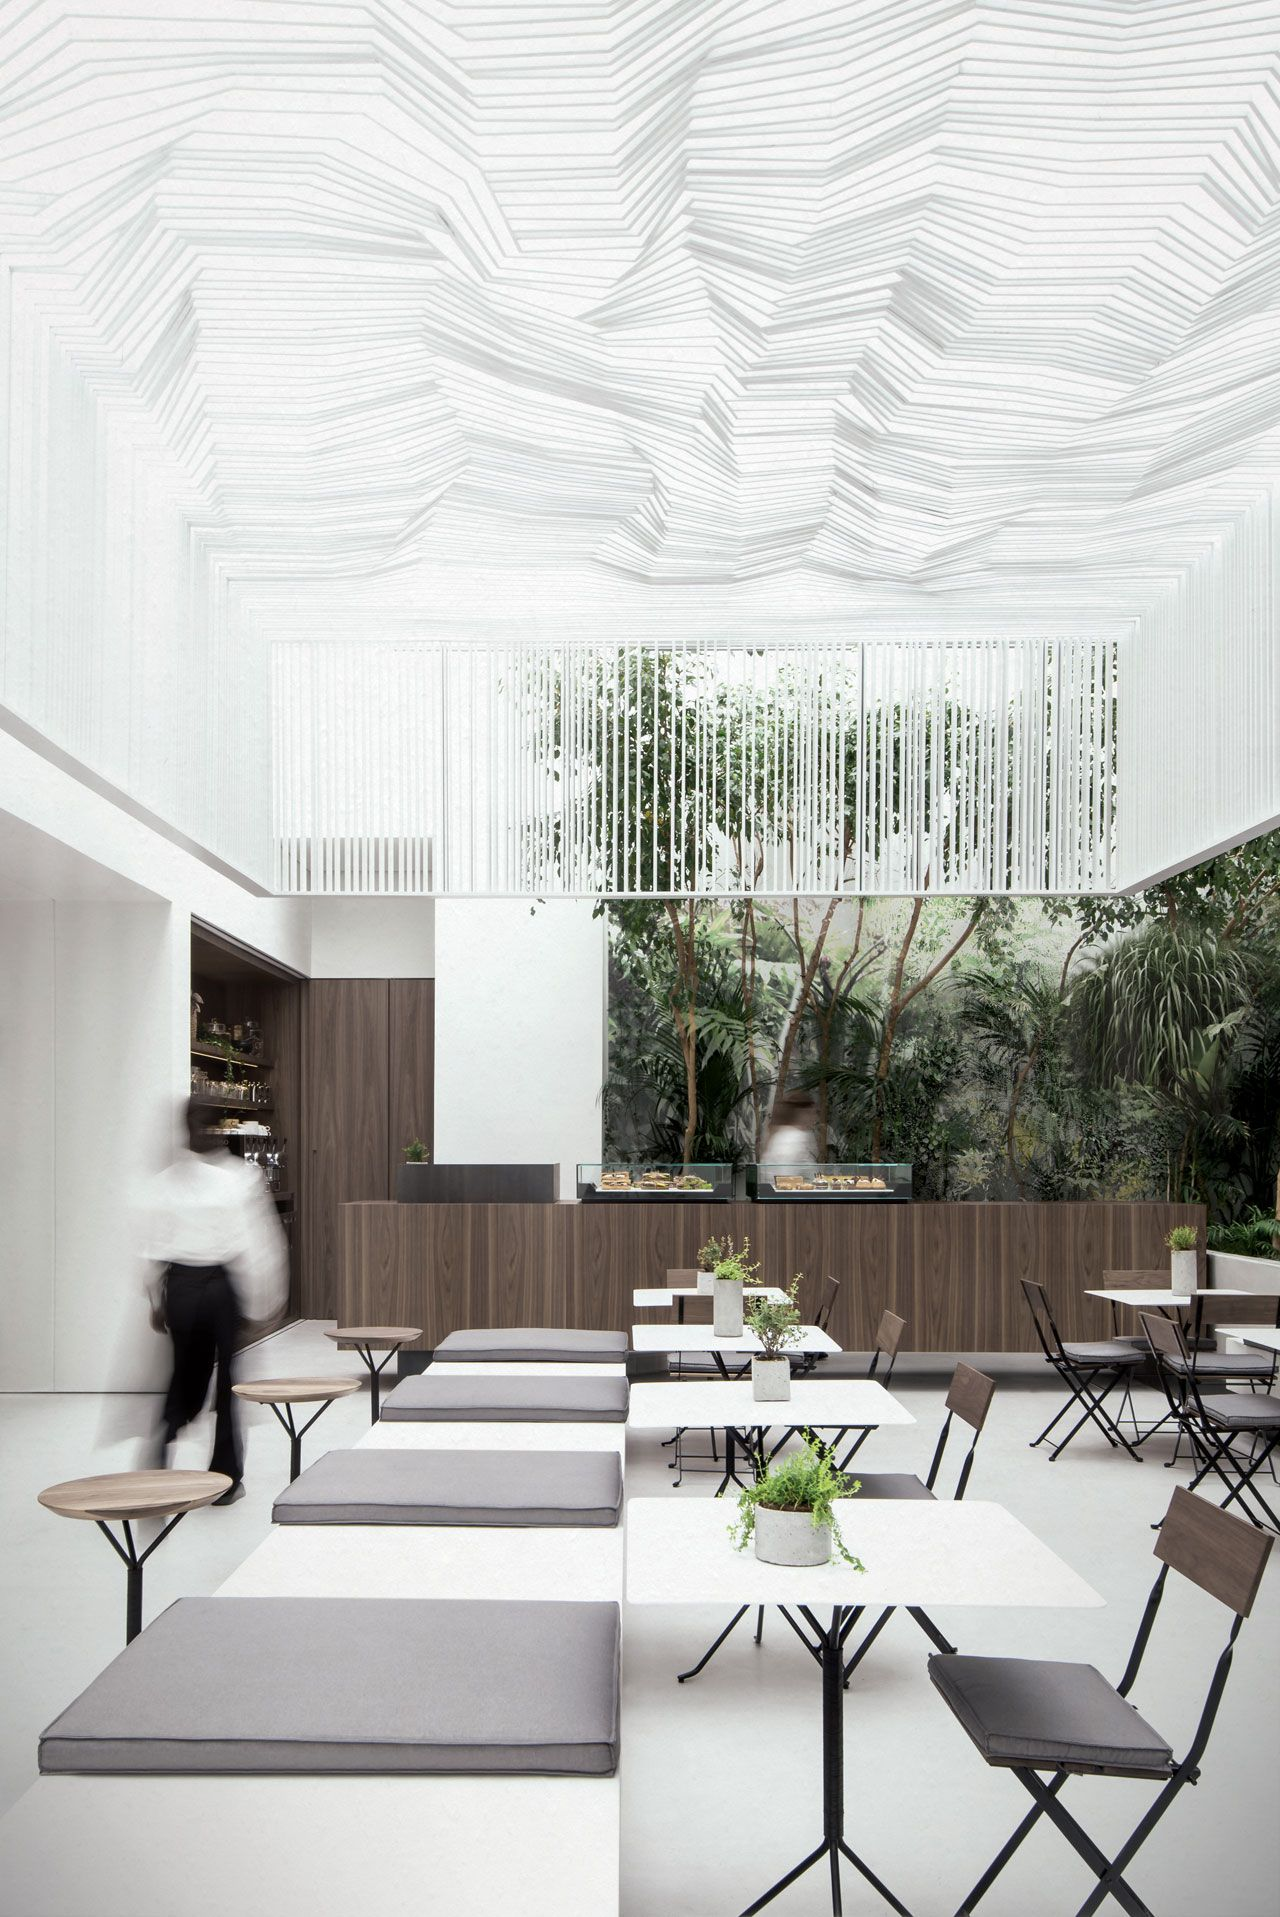 The New Cycladic Art Museum Shop & Café in Athens, Greece by Kois ...